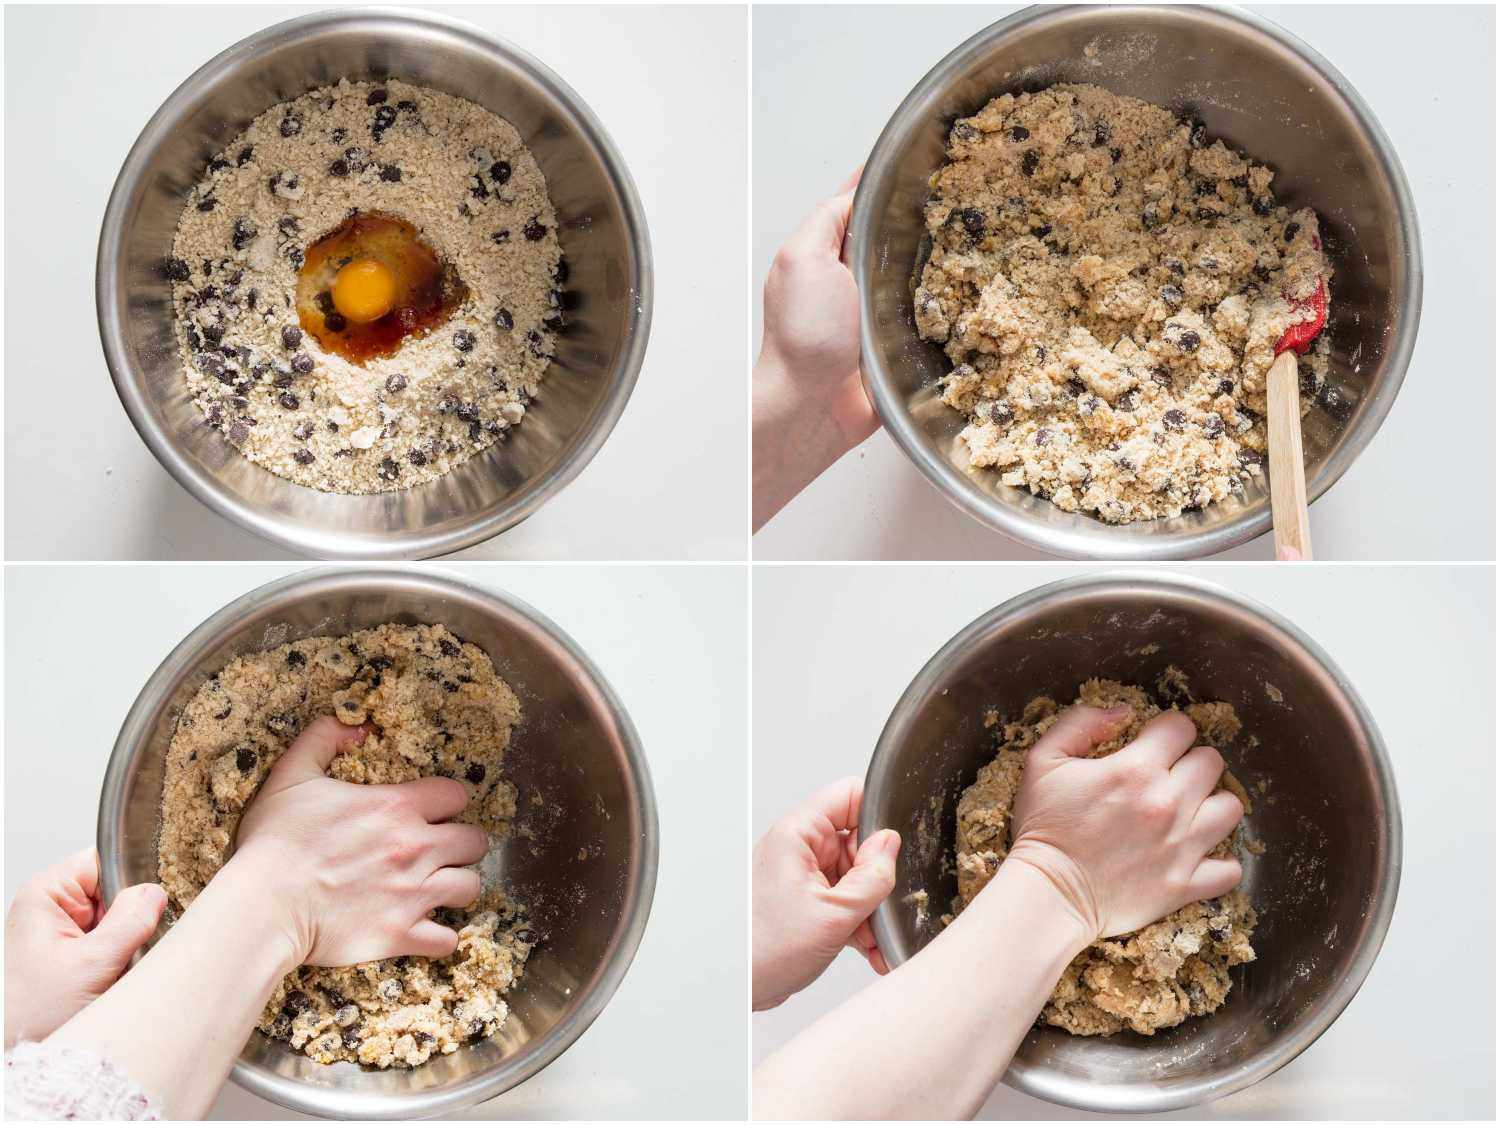 incorporating the egg and vanilla into the dough